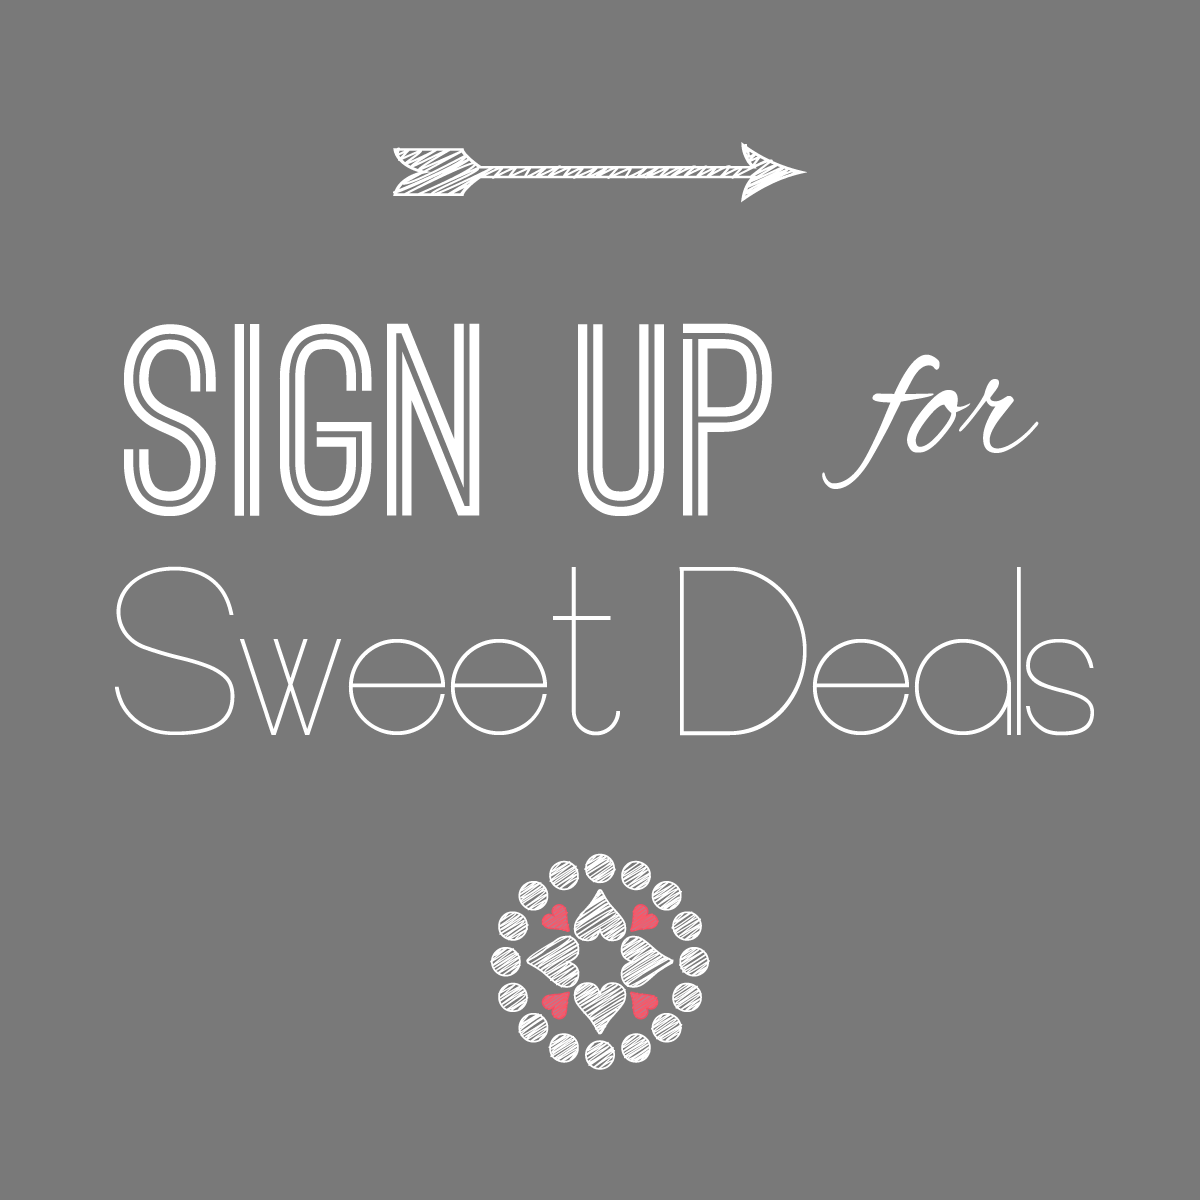 email sign up graphics 2014 01